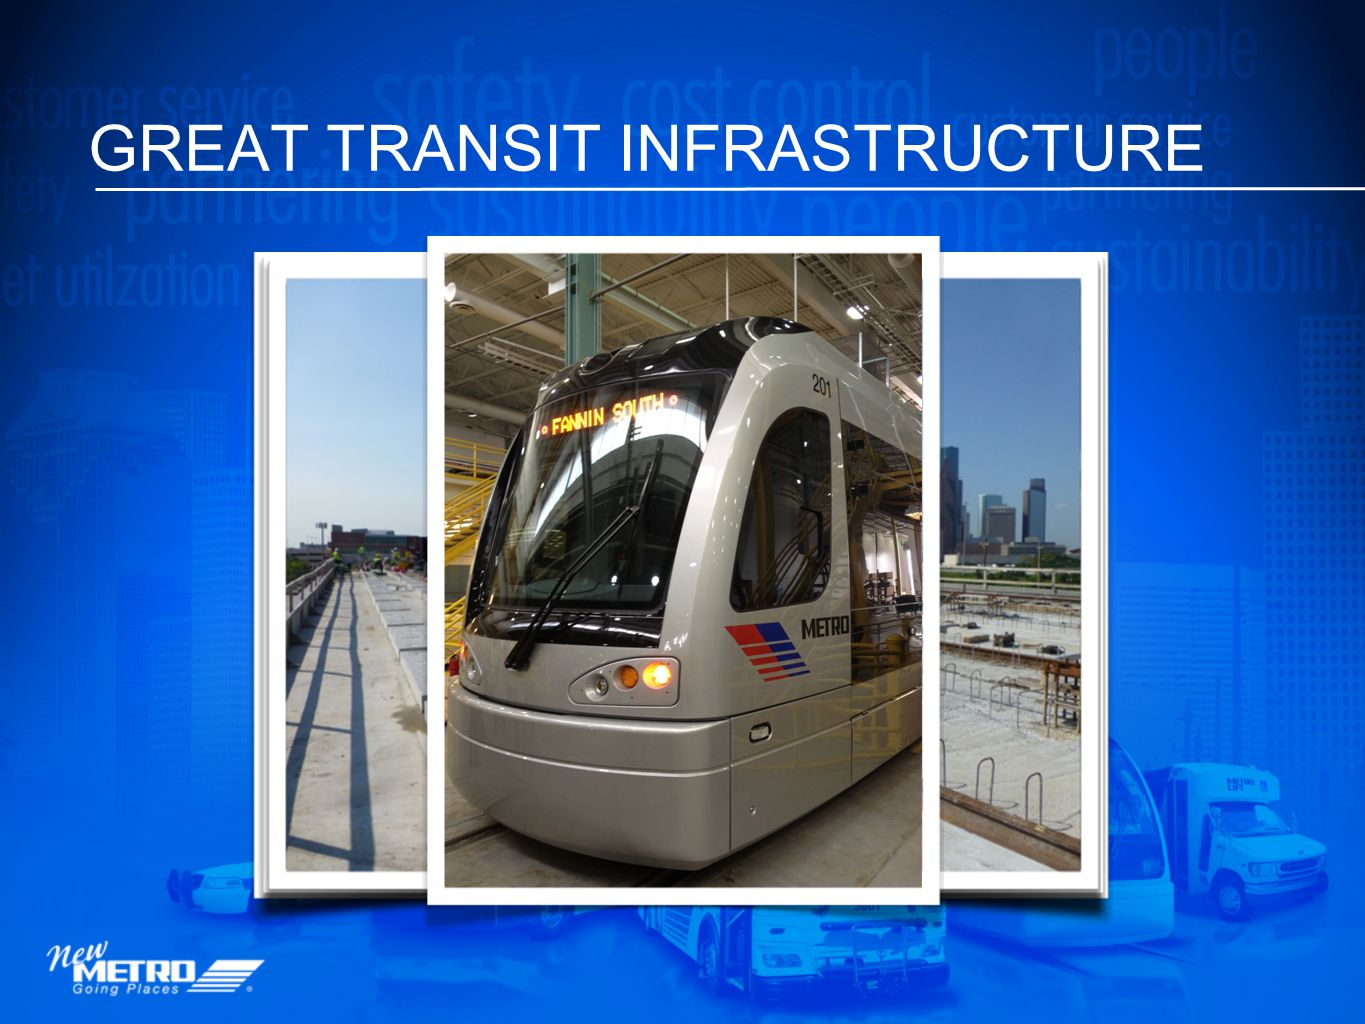 GREAT TRANSIT INFRASTRUCTURE